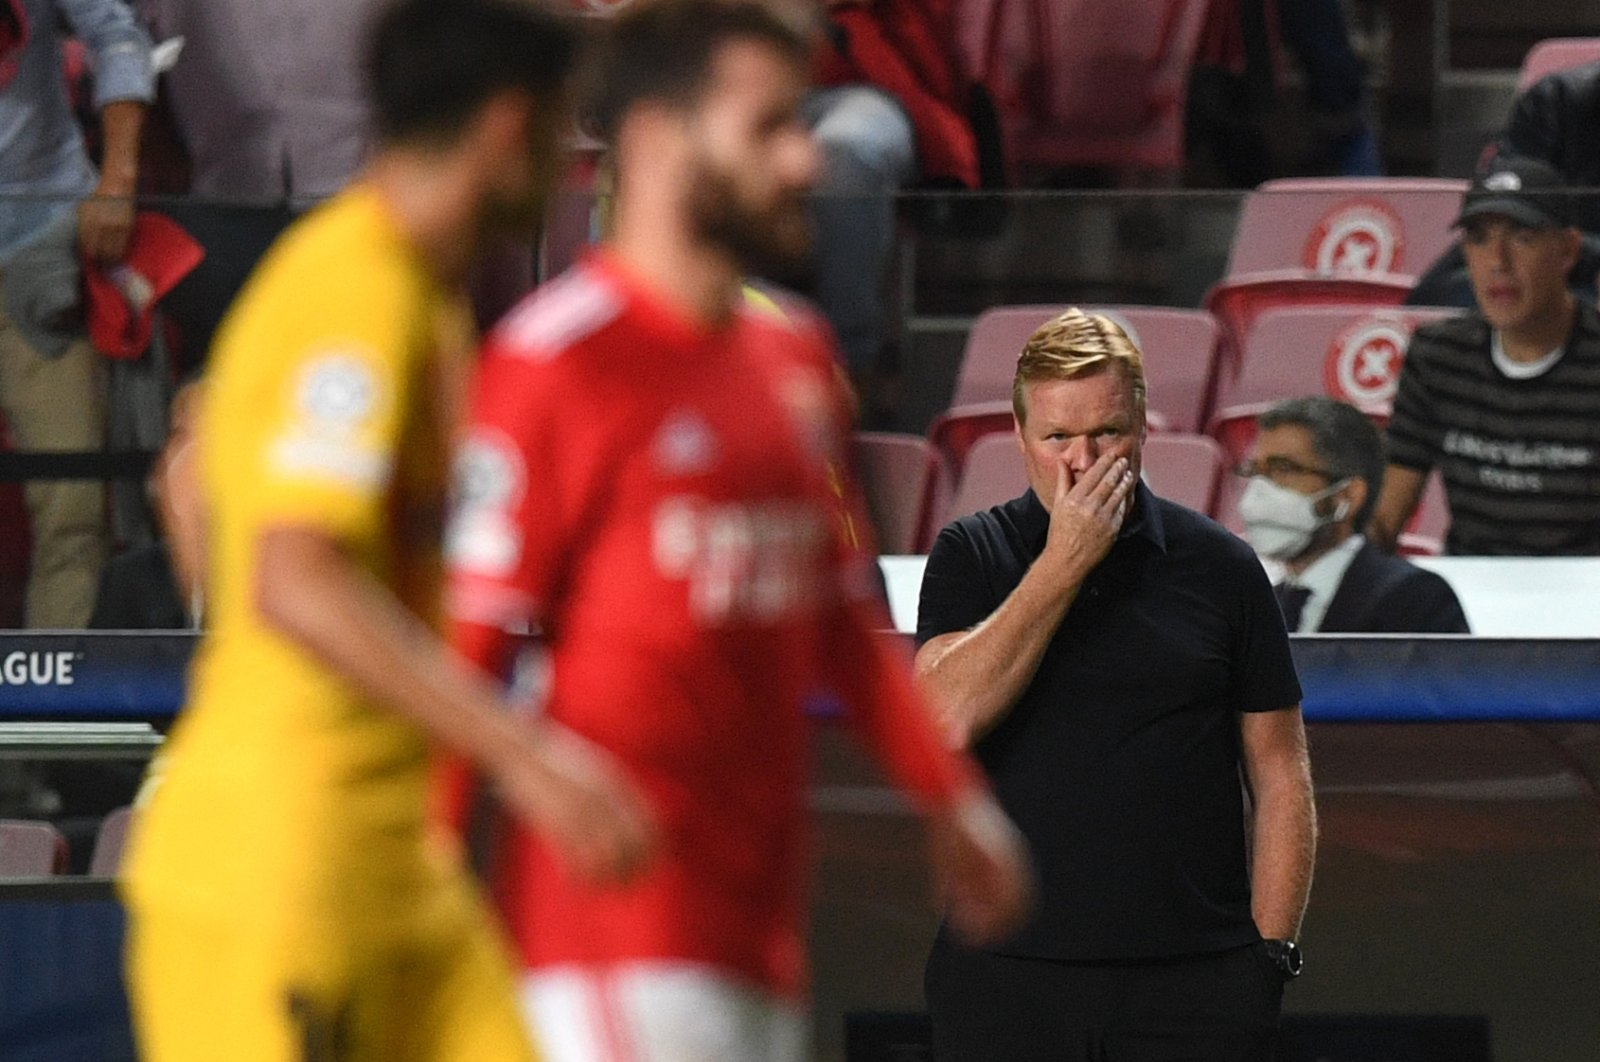 Barcelona coach Ronald Koeman reacts during a Champions League match against Benfica at the Luz stadium, in Lisbon, Portugal, Sept. 29, 2021. (AFP Photo)